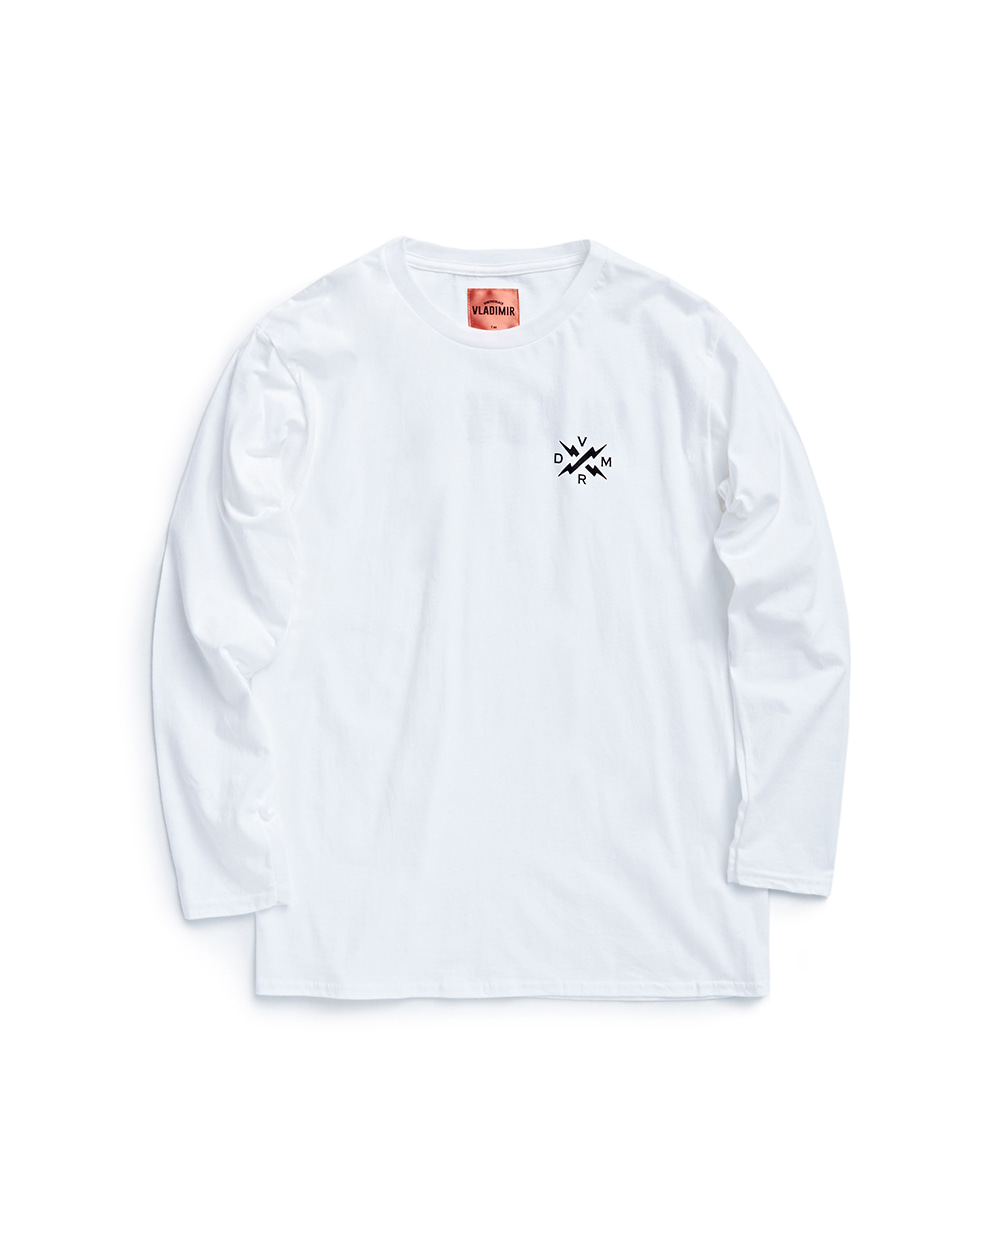 BACKLOGO T SHIRTS WHITE